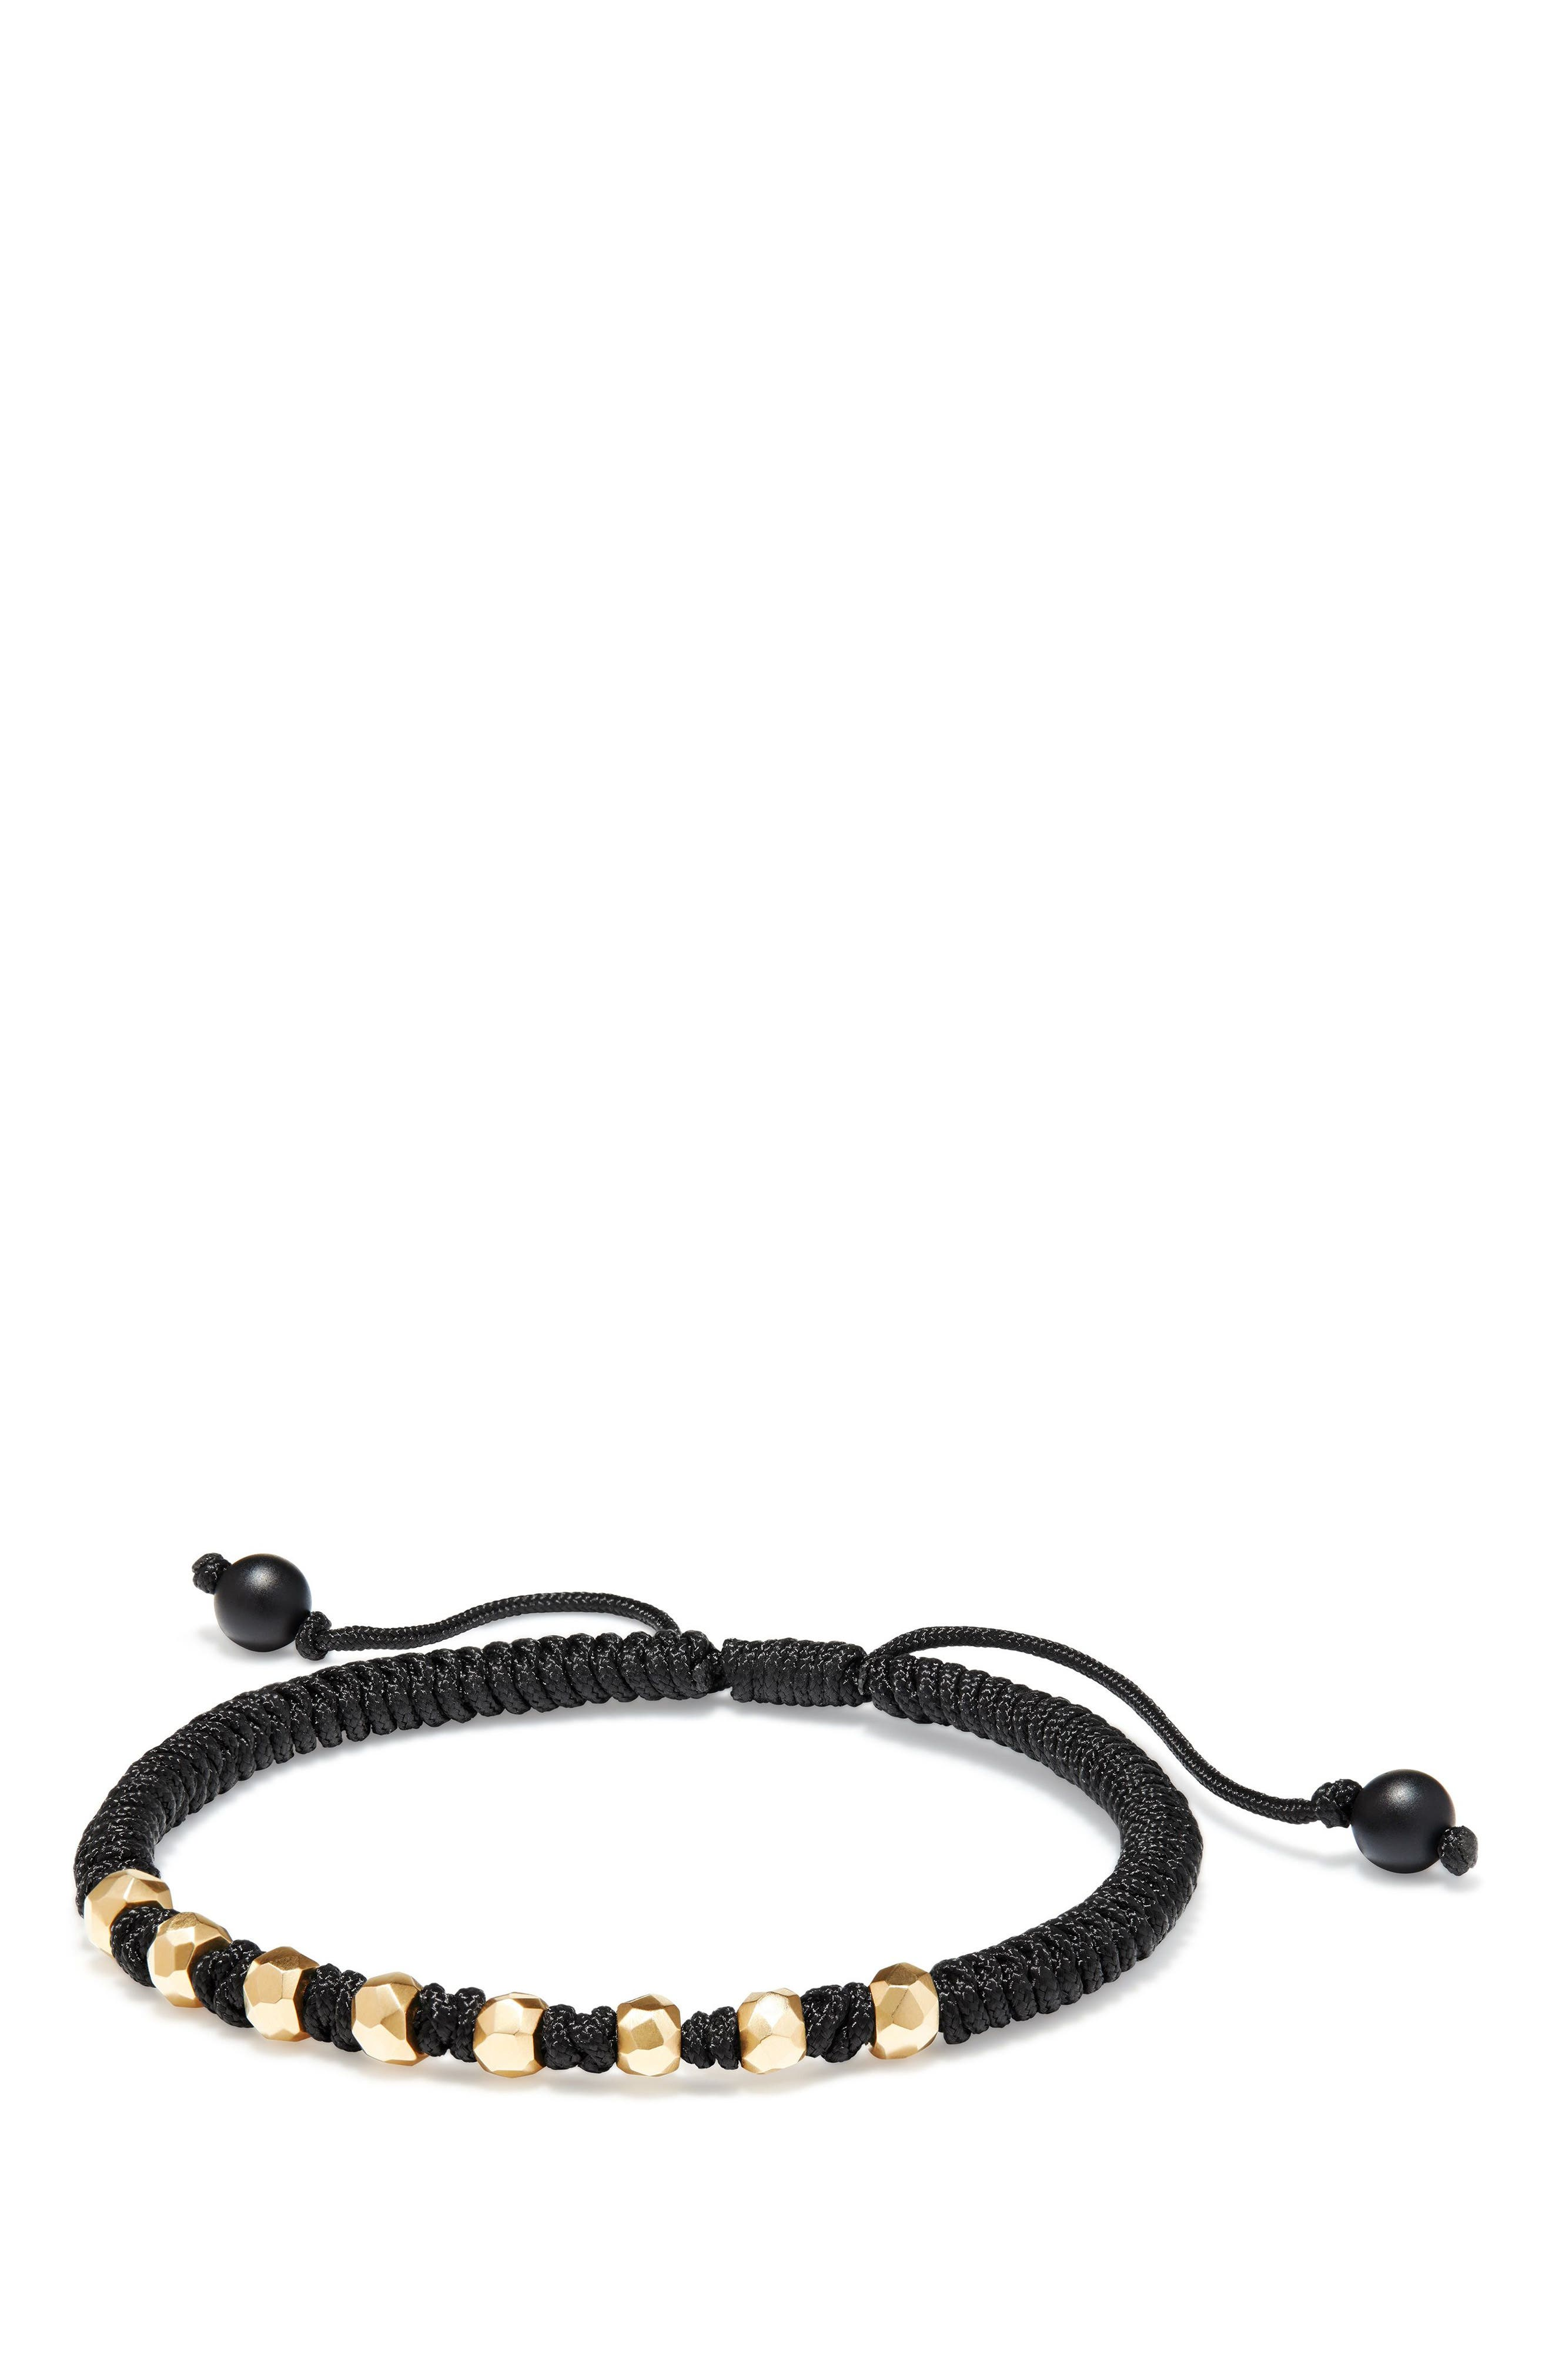 DY Fortune Woven Bracelet with Black Onyx in 18K Gold,                             Main thumbnail 1, color,                             BLACK